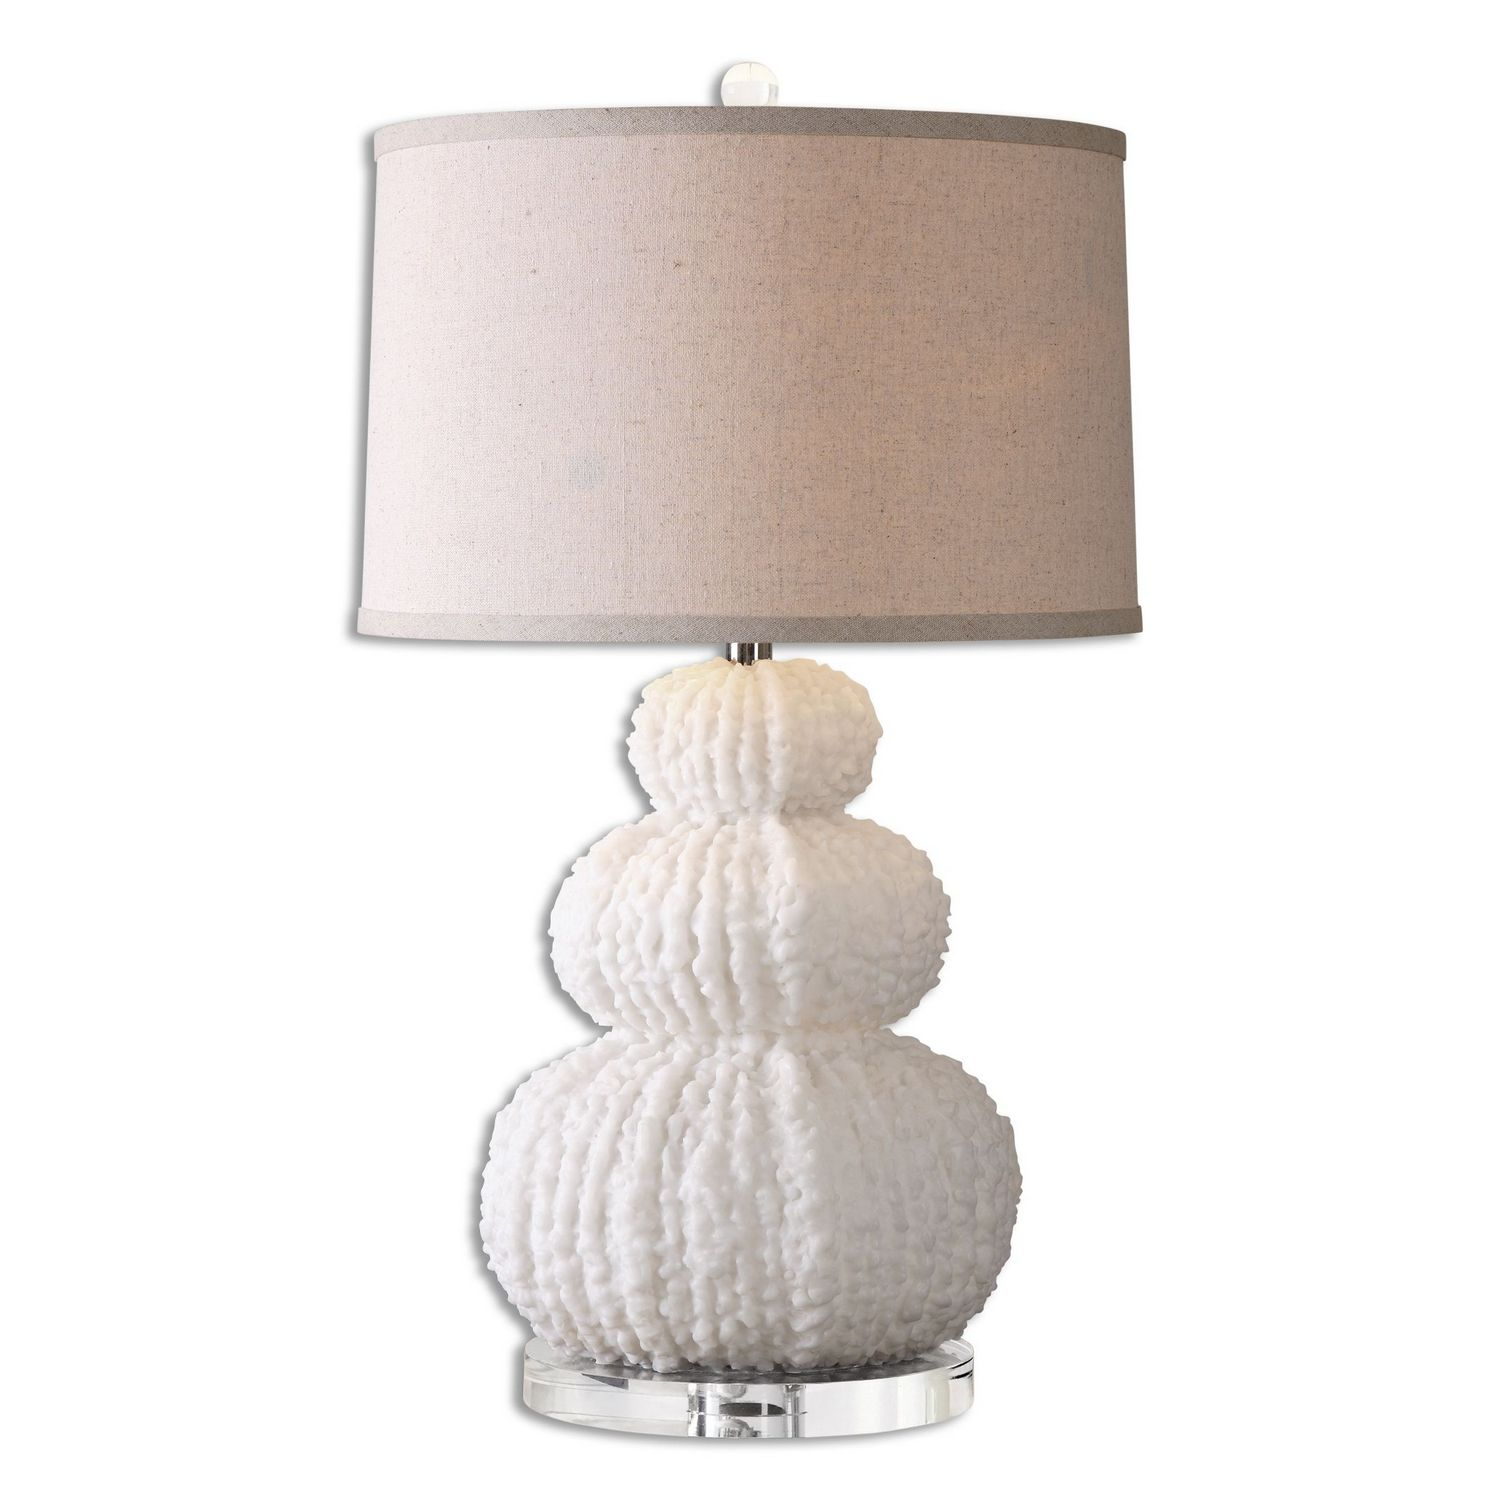 Uttermost Fontanne Shell Table Lamp - Ivory